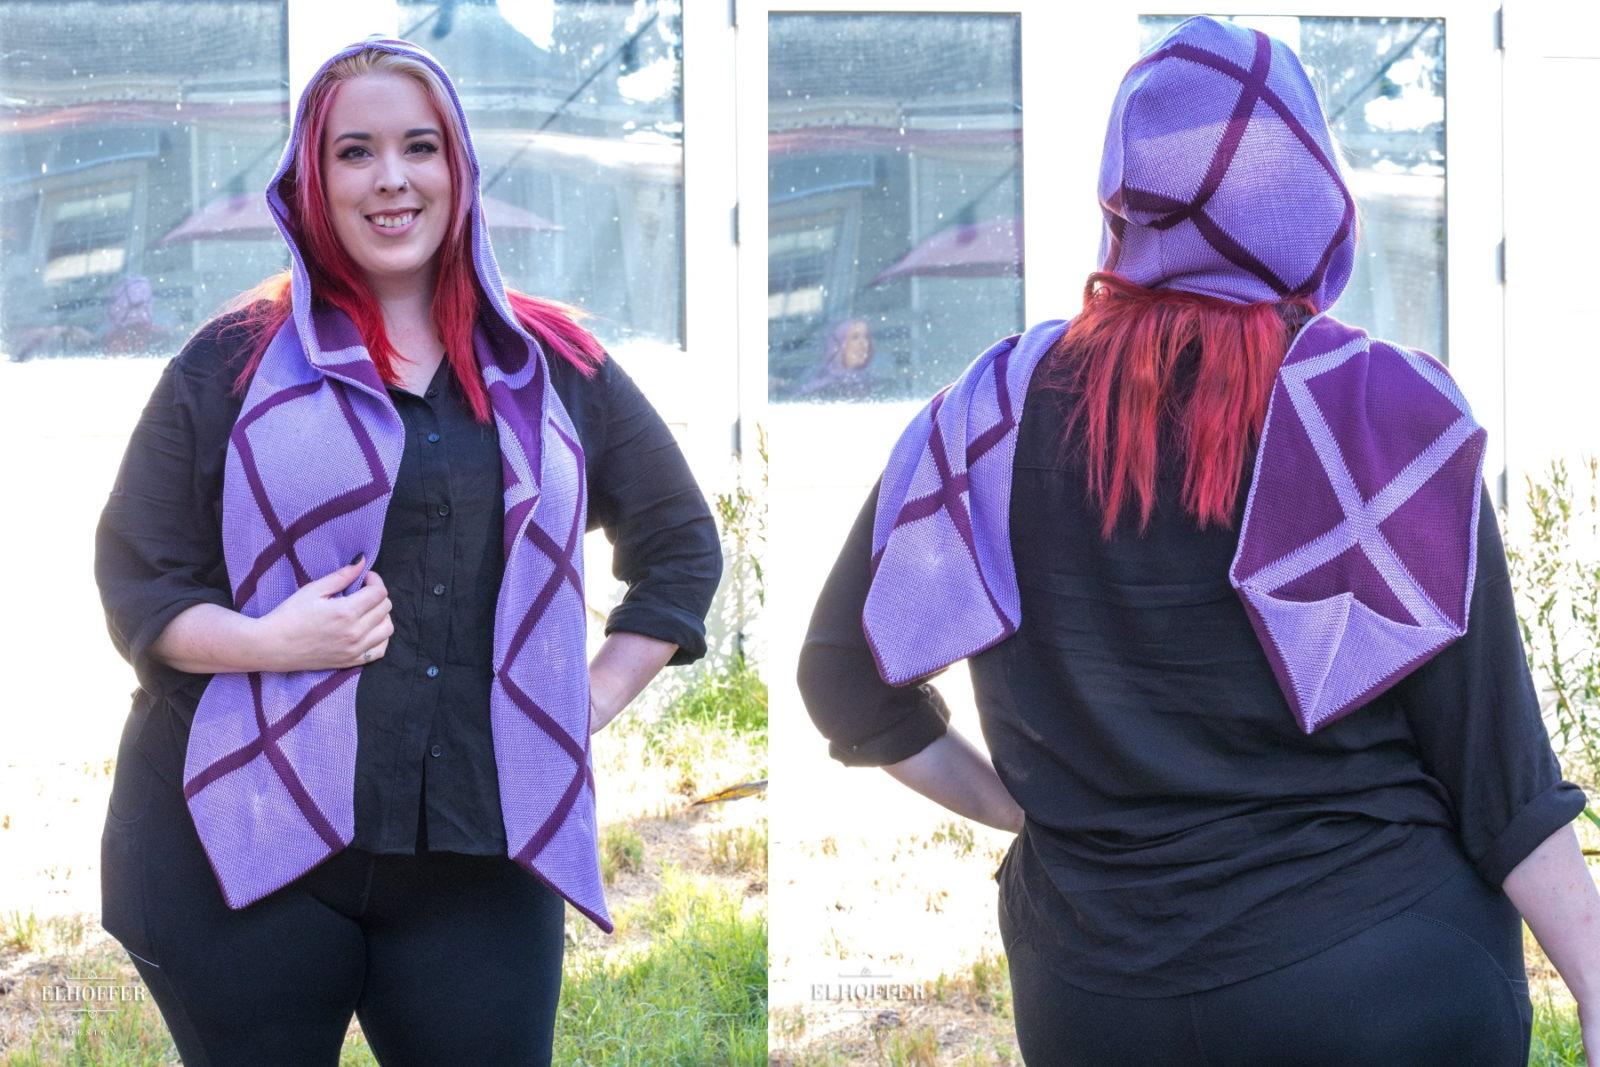 Star Wars Queen Amidala Inspired Galactic Queen Hooded Scarf by Elhoffer Design